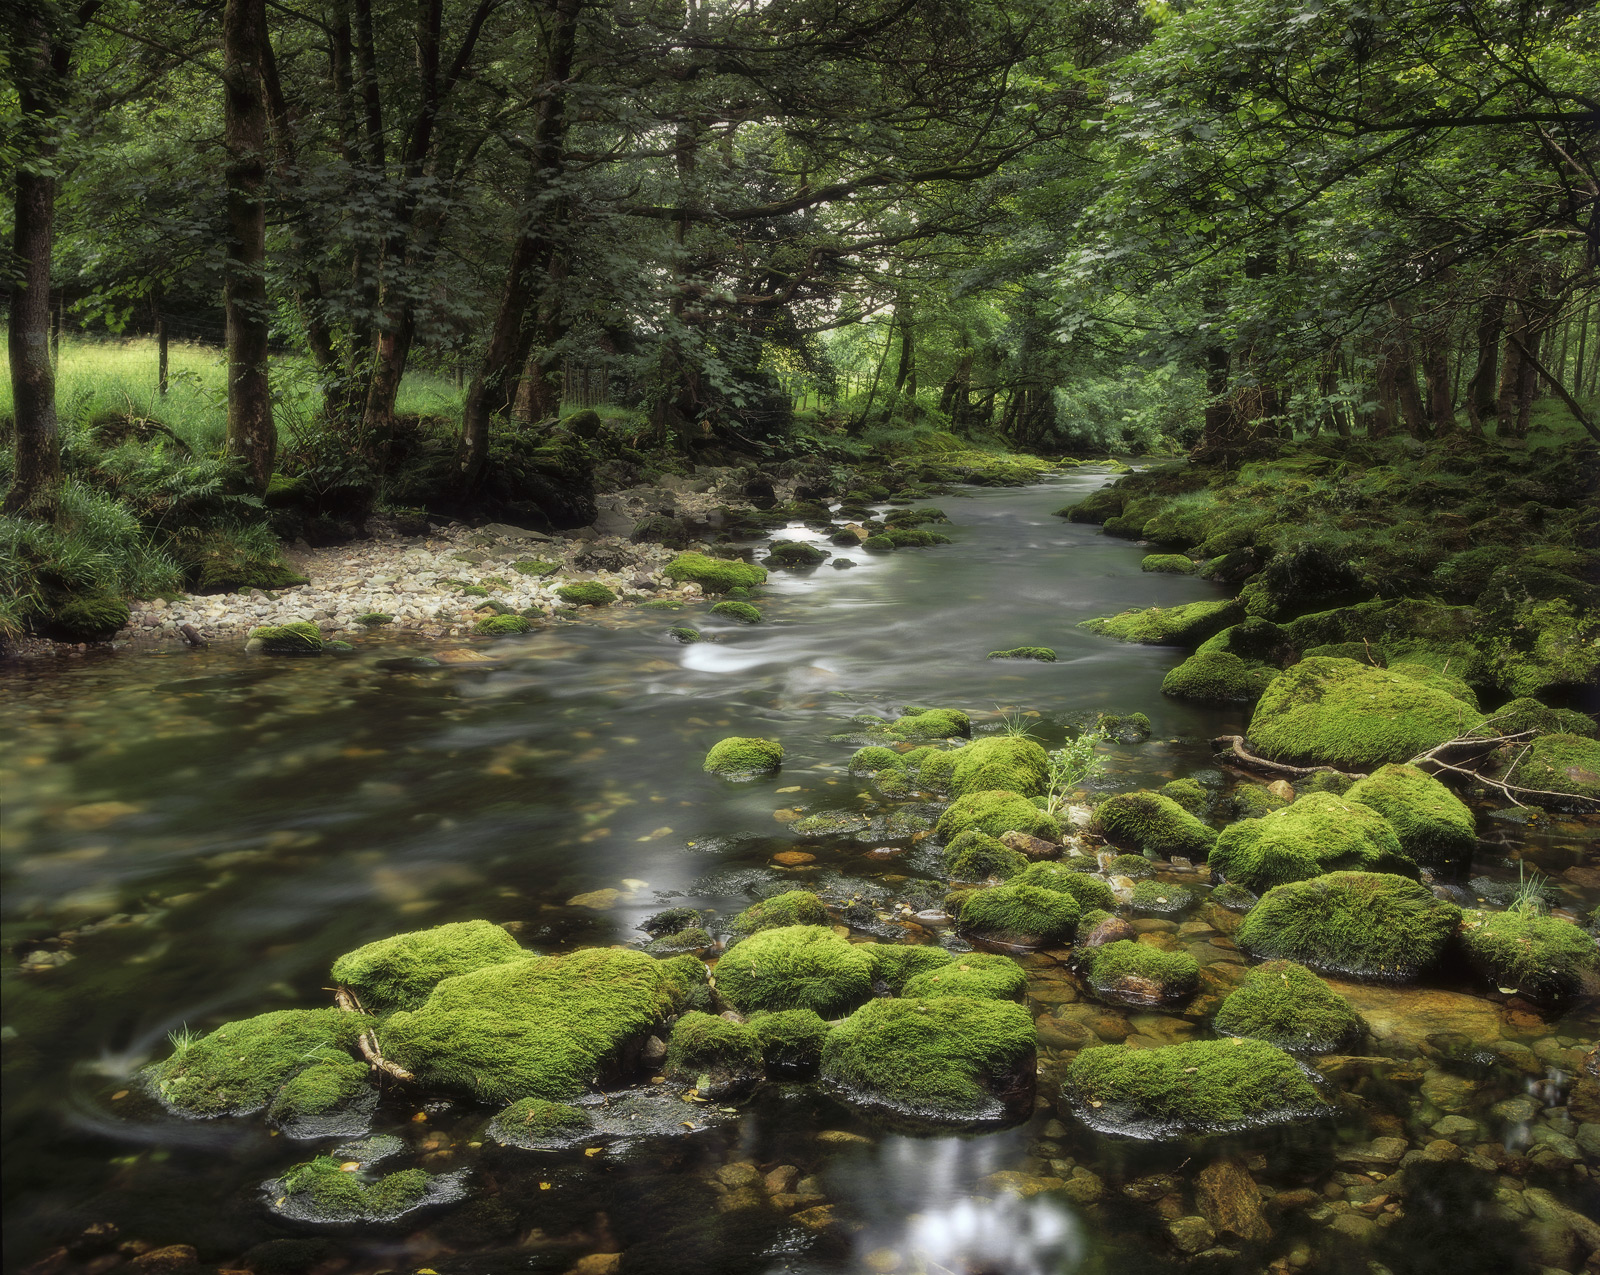 The lake district has some beautiful crystal clear trout streams that meander through it replenishing the lakes. The stones...